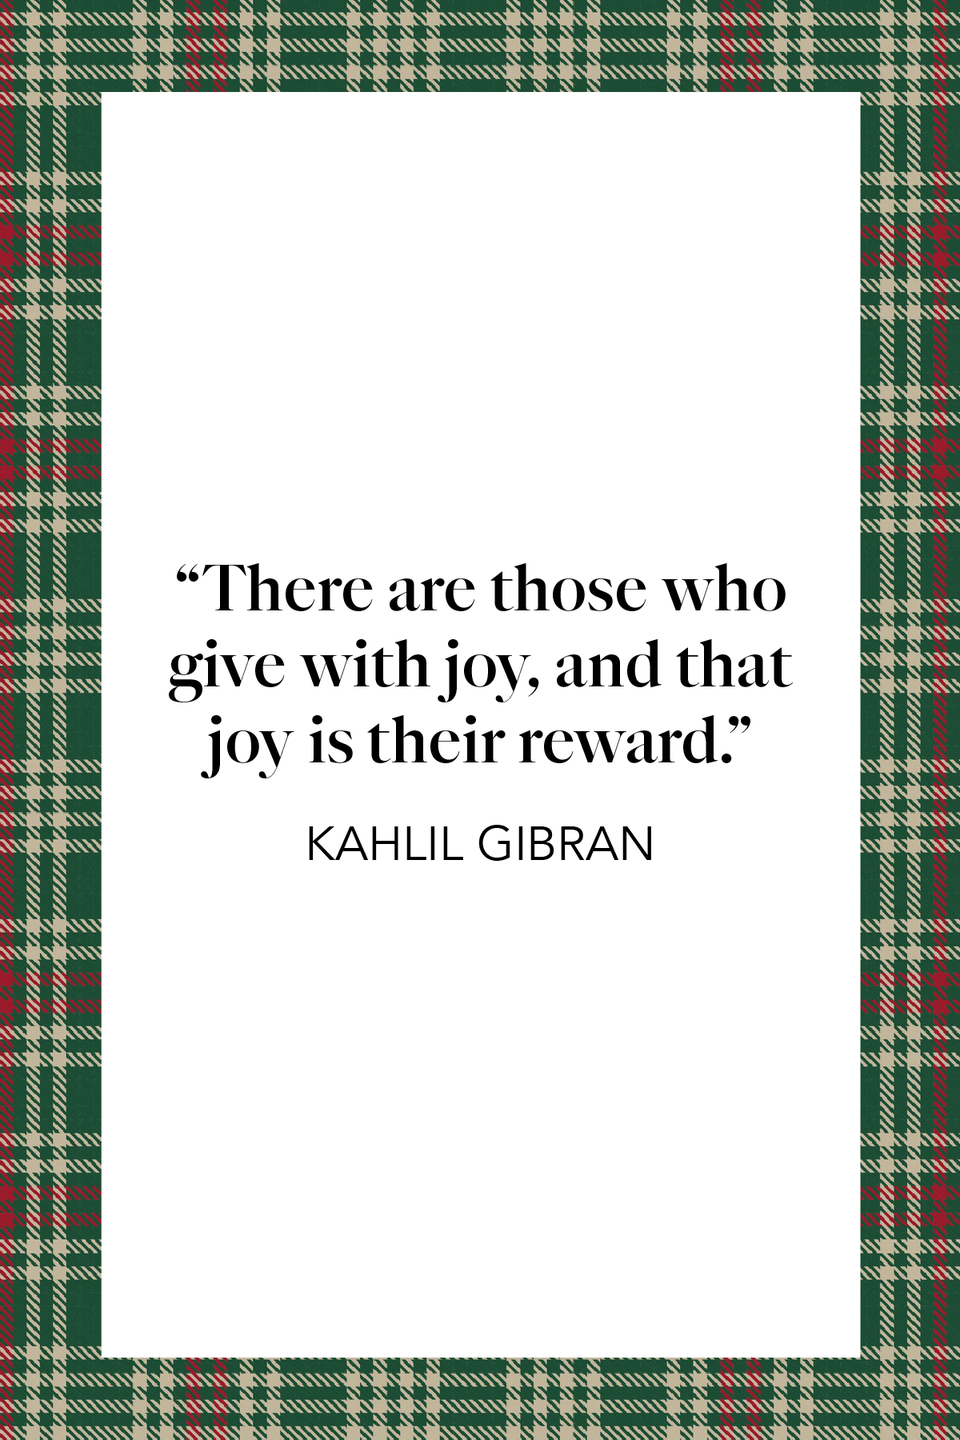 "<p>Lebanese writer Kahlil Gibran wrote ""There are those who give with joy, and that joy is their reward,"" in his book <em><a href=""https://www.amazon.com/Prophet-Borzoi-Book-Kahlil-Gibran/dp/0394404289?tag=syn-yahoo-20&ascsubtag=%5Bartid%7C10072.g.34536312%5Bsrc%7Cyahoo-us"" rel=""nofollow noopener"" target=""_blank"" data-ylk=""slk:The Prophet"" class=""link rapid-noclick-resp"">The Prophet</a></em>.</p>"